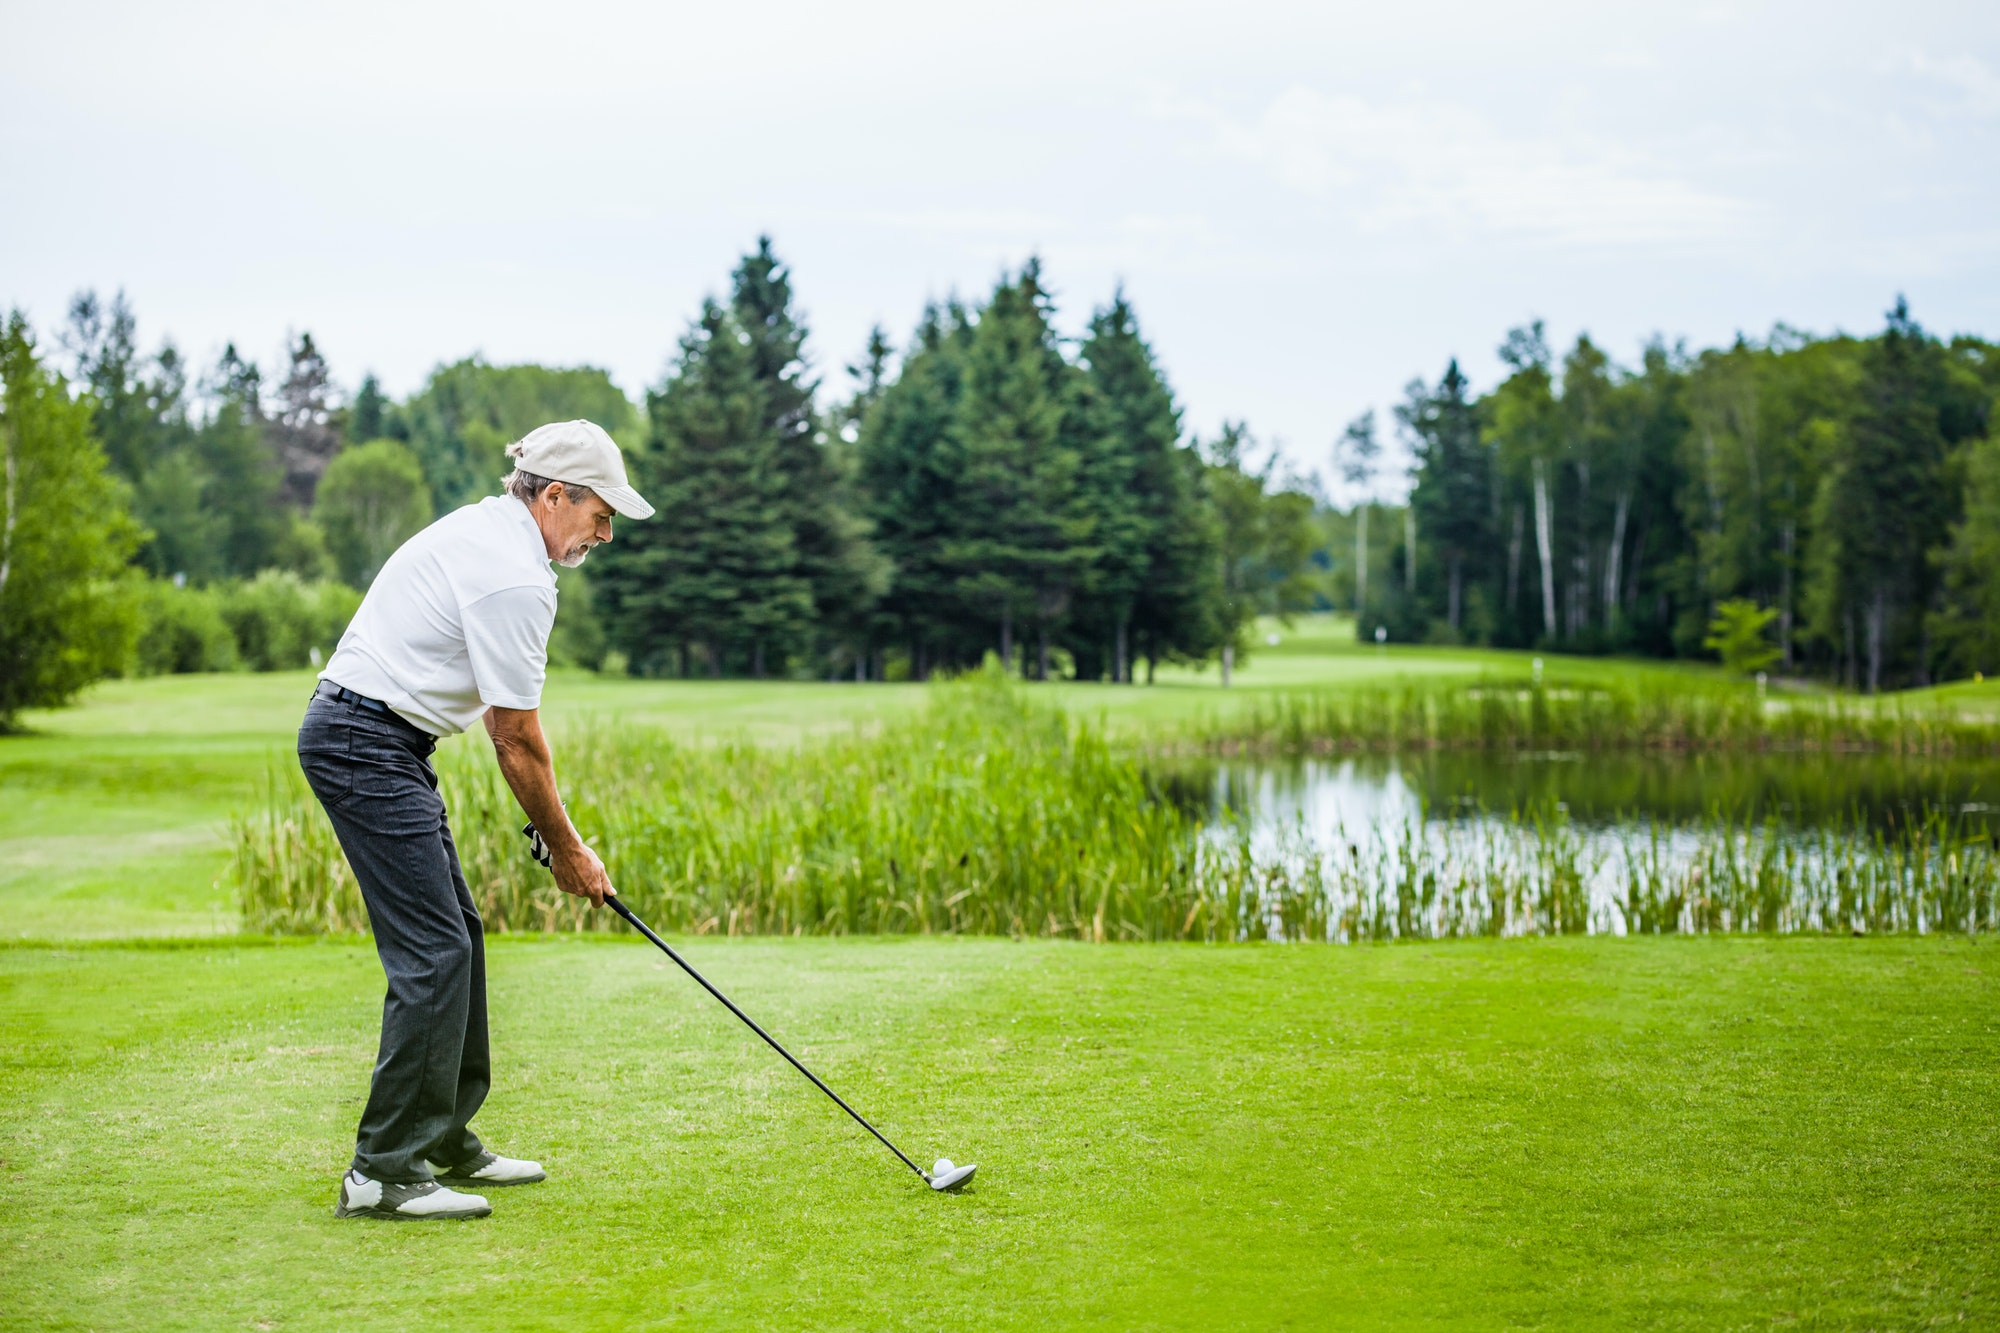 What is your best advice to overcome nerves on the first tee?